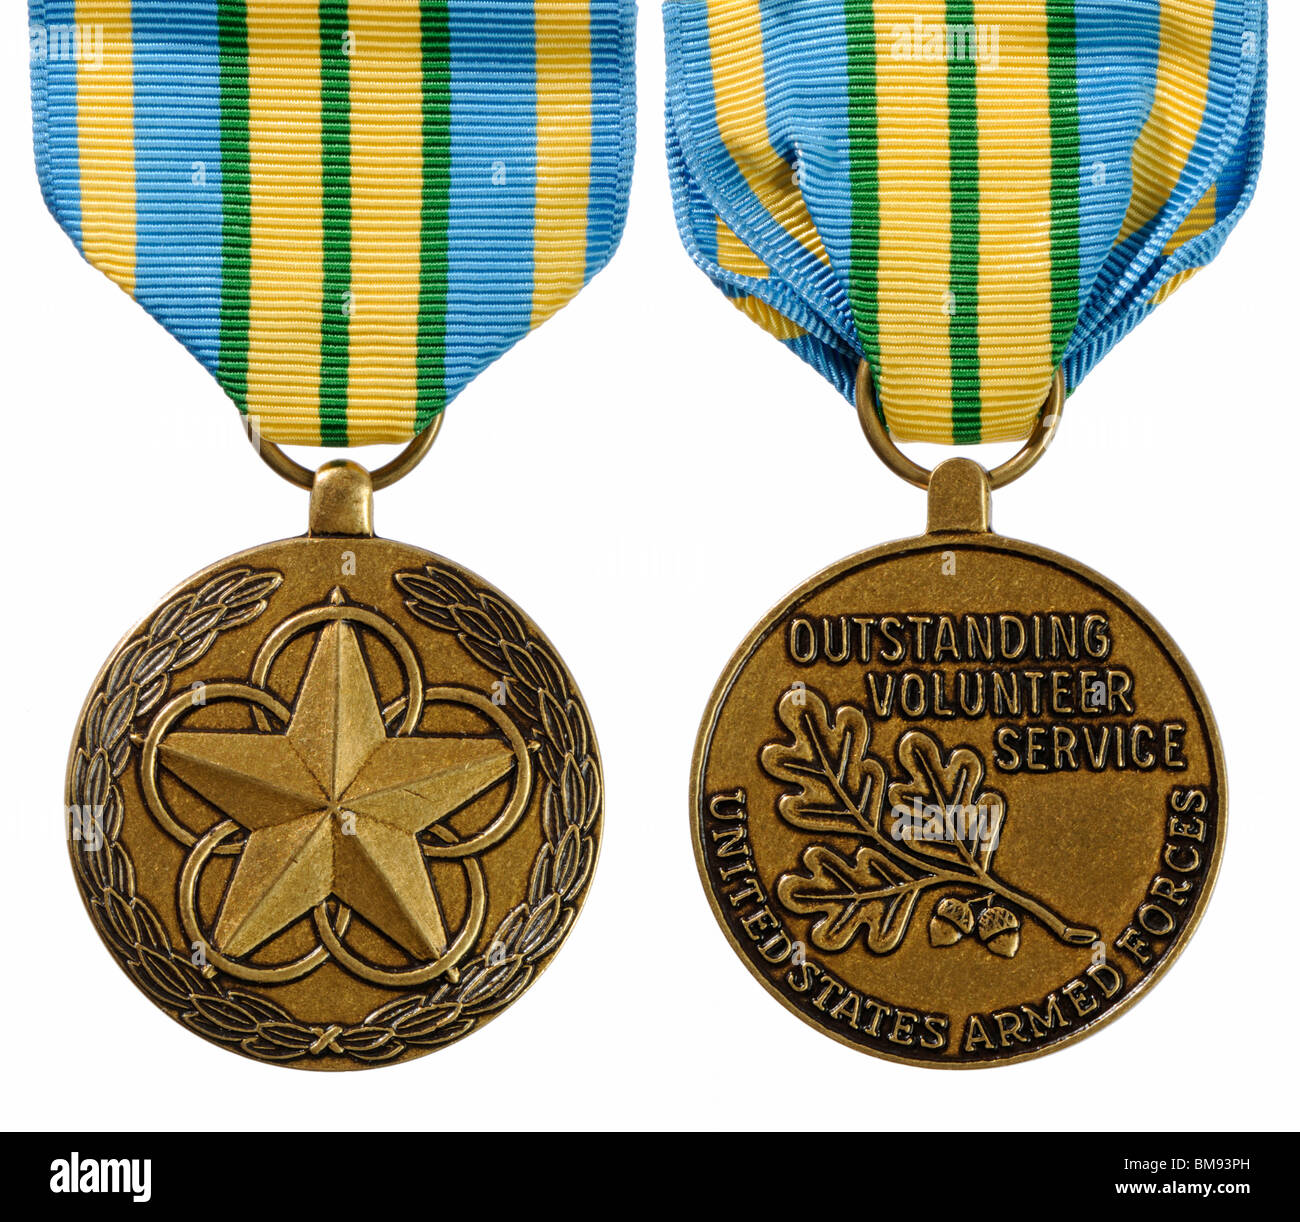 US Armed Forces Outstanding Volunteer Service Medal - Stock Image